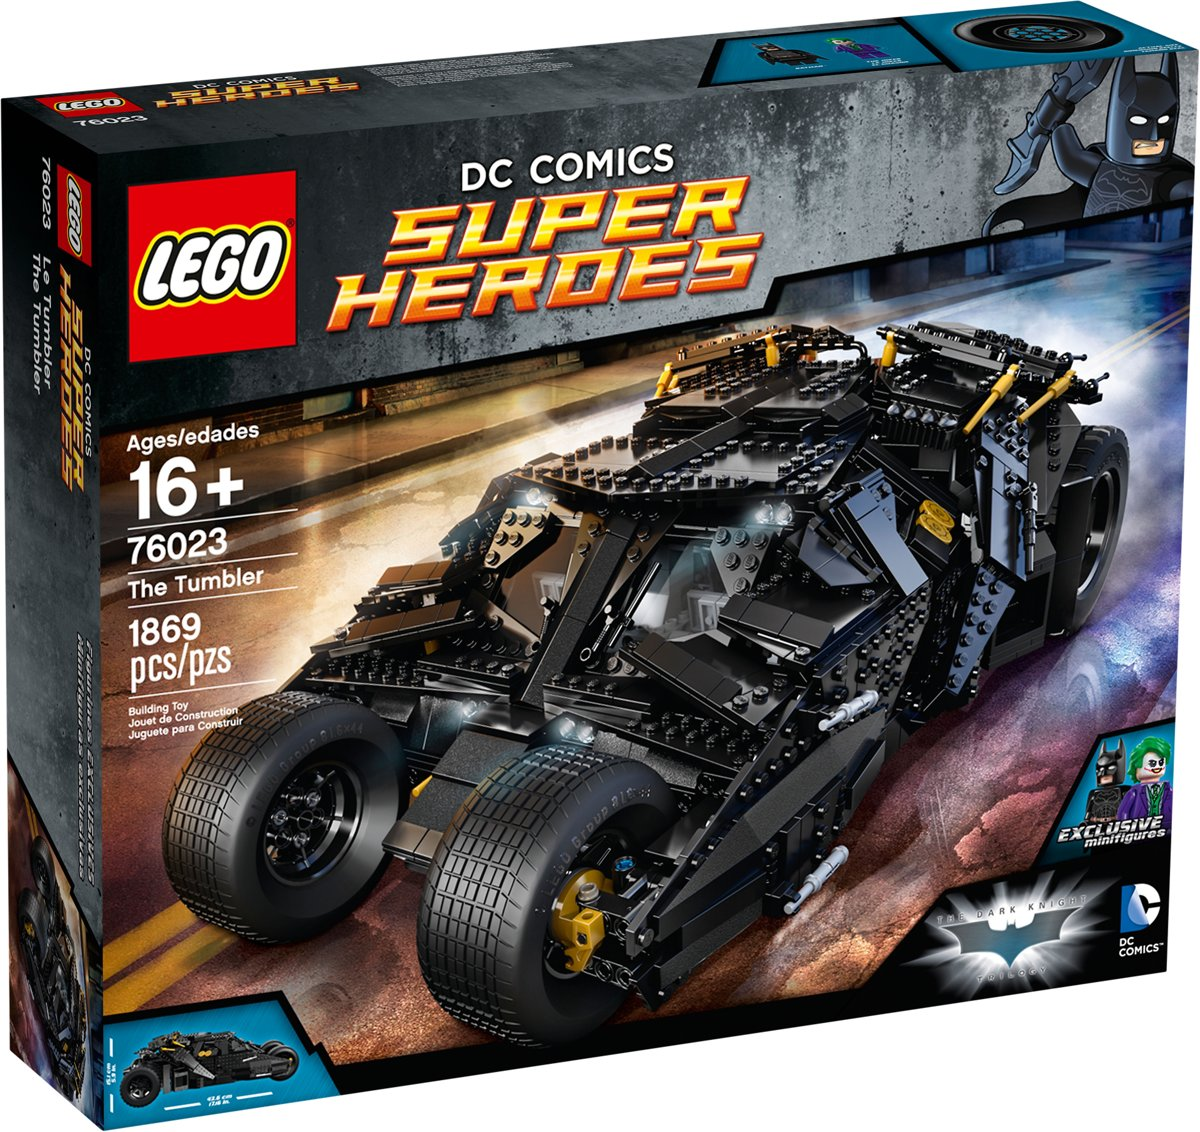 LEGO Super Heroes The Tumbler - 76023